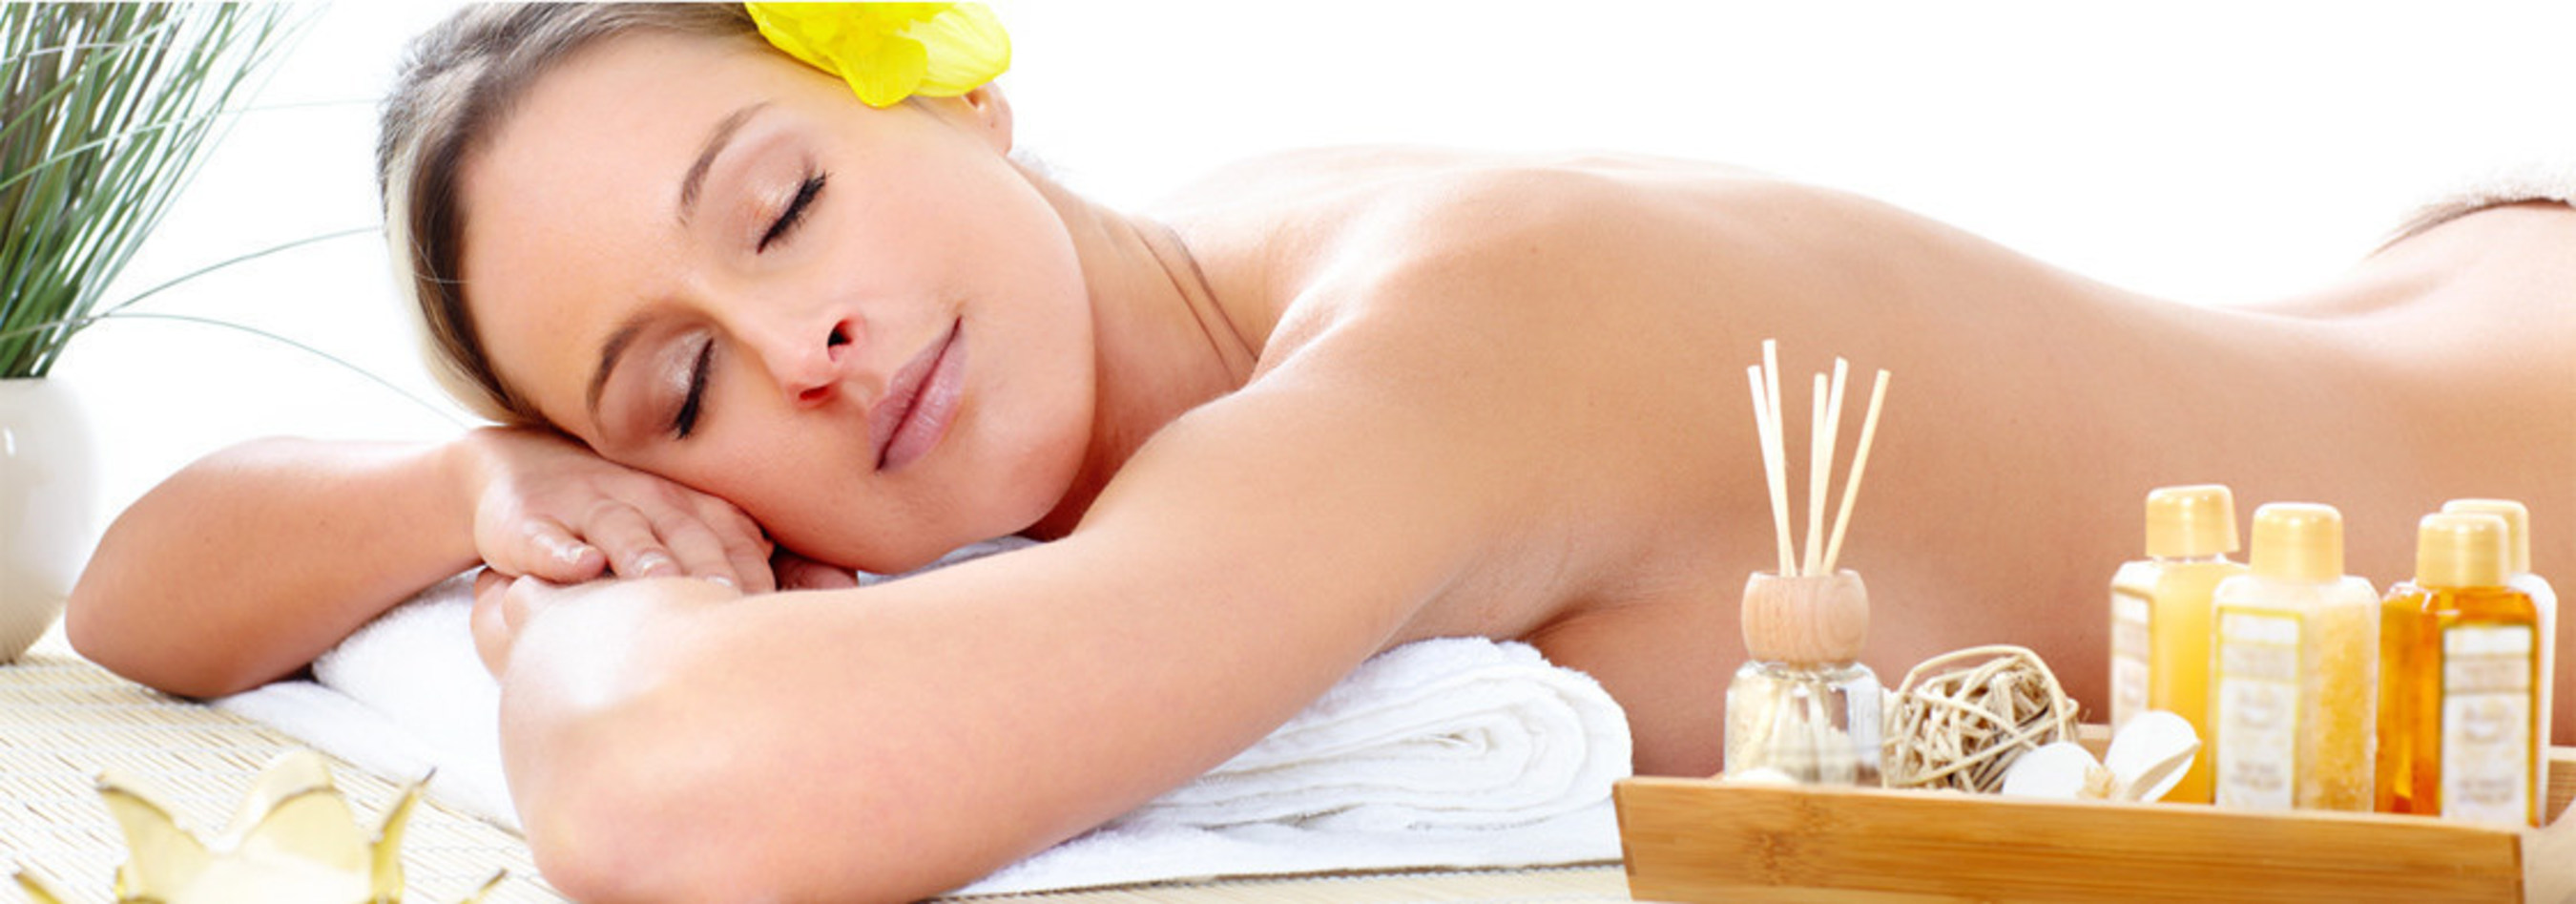 On Demand Service for Massage Therapy. Yes, They Come to You!